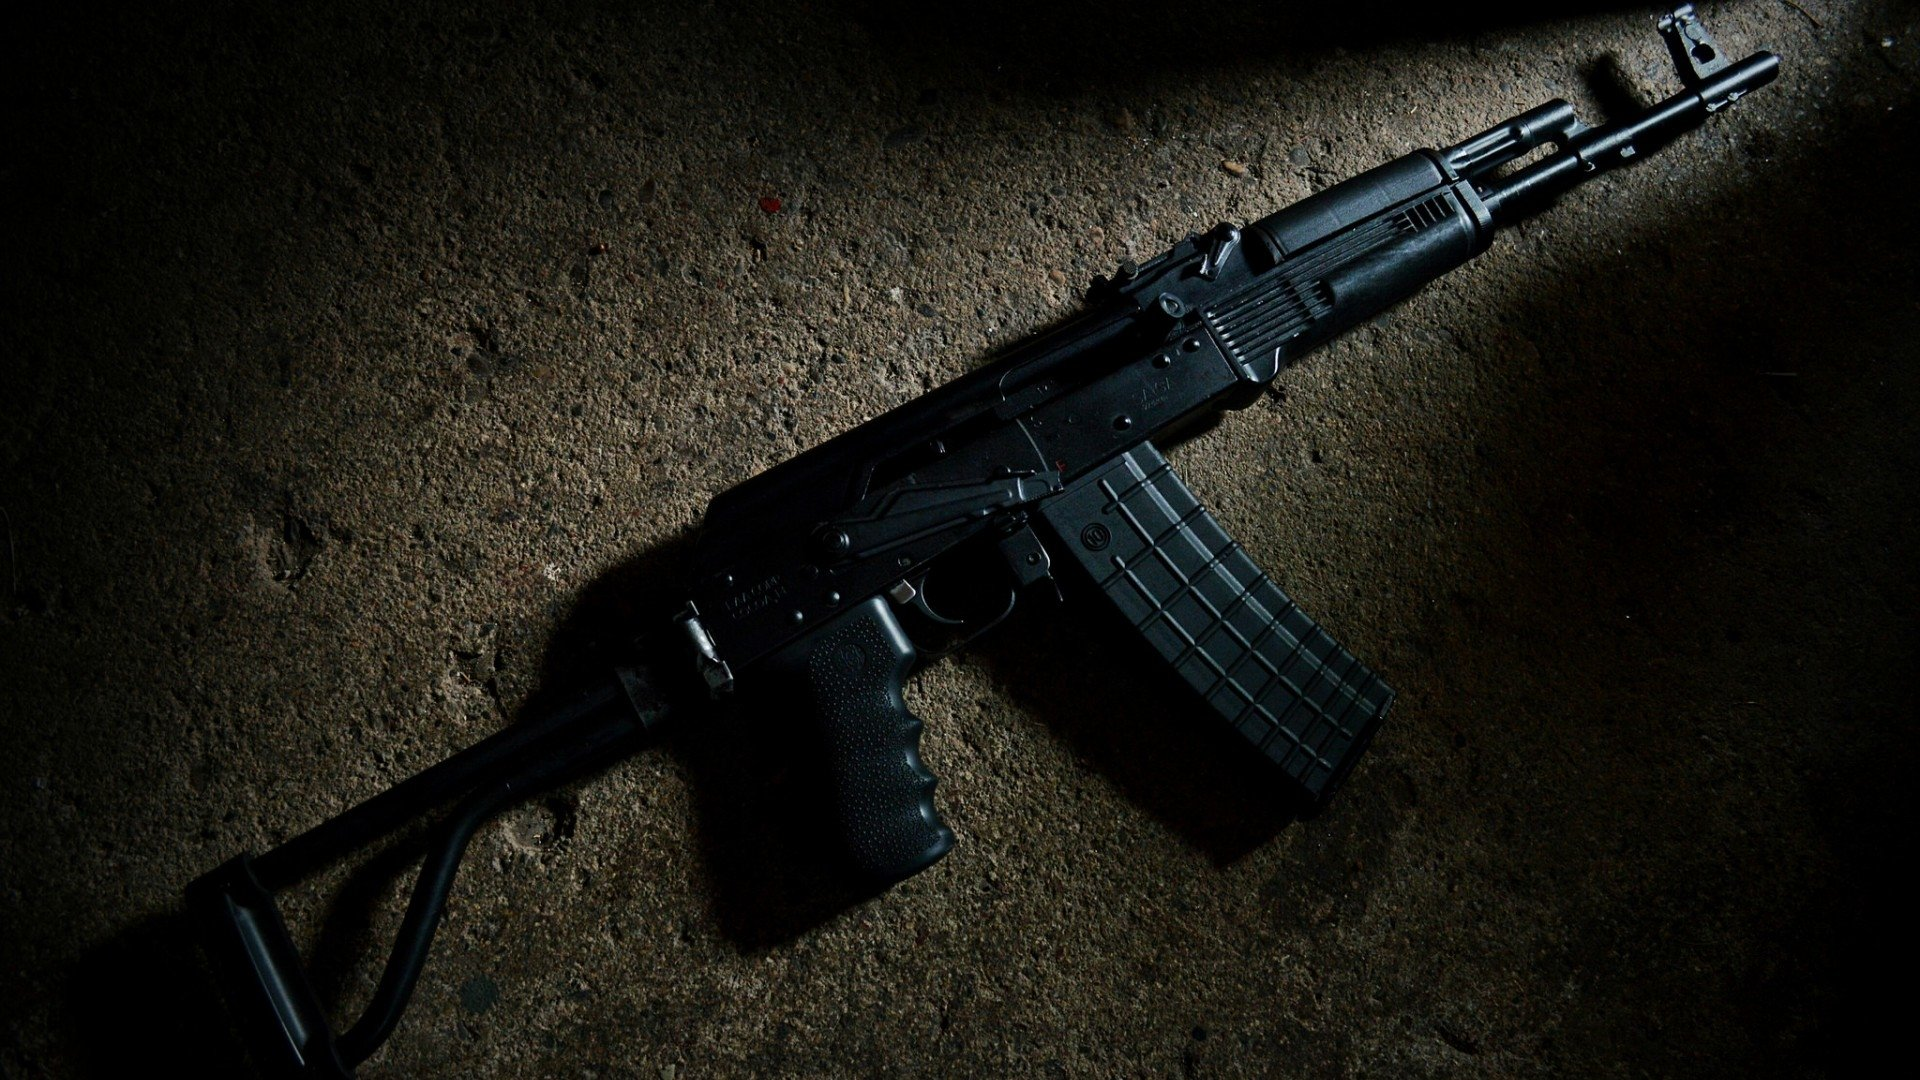 Ak 47 Wallpaper: AK-47 HD Wallpaper